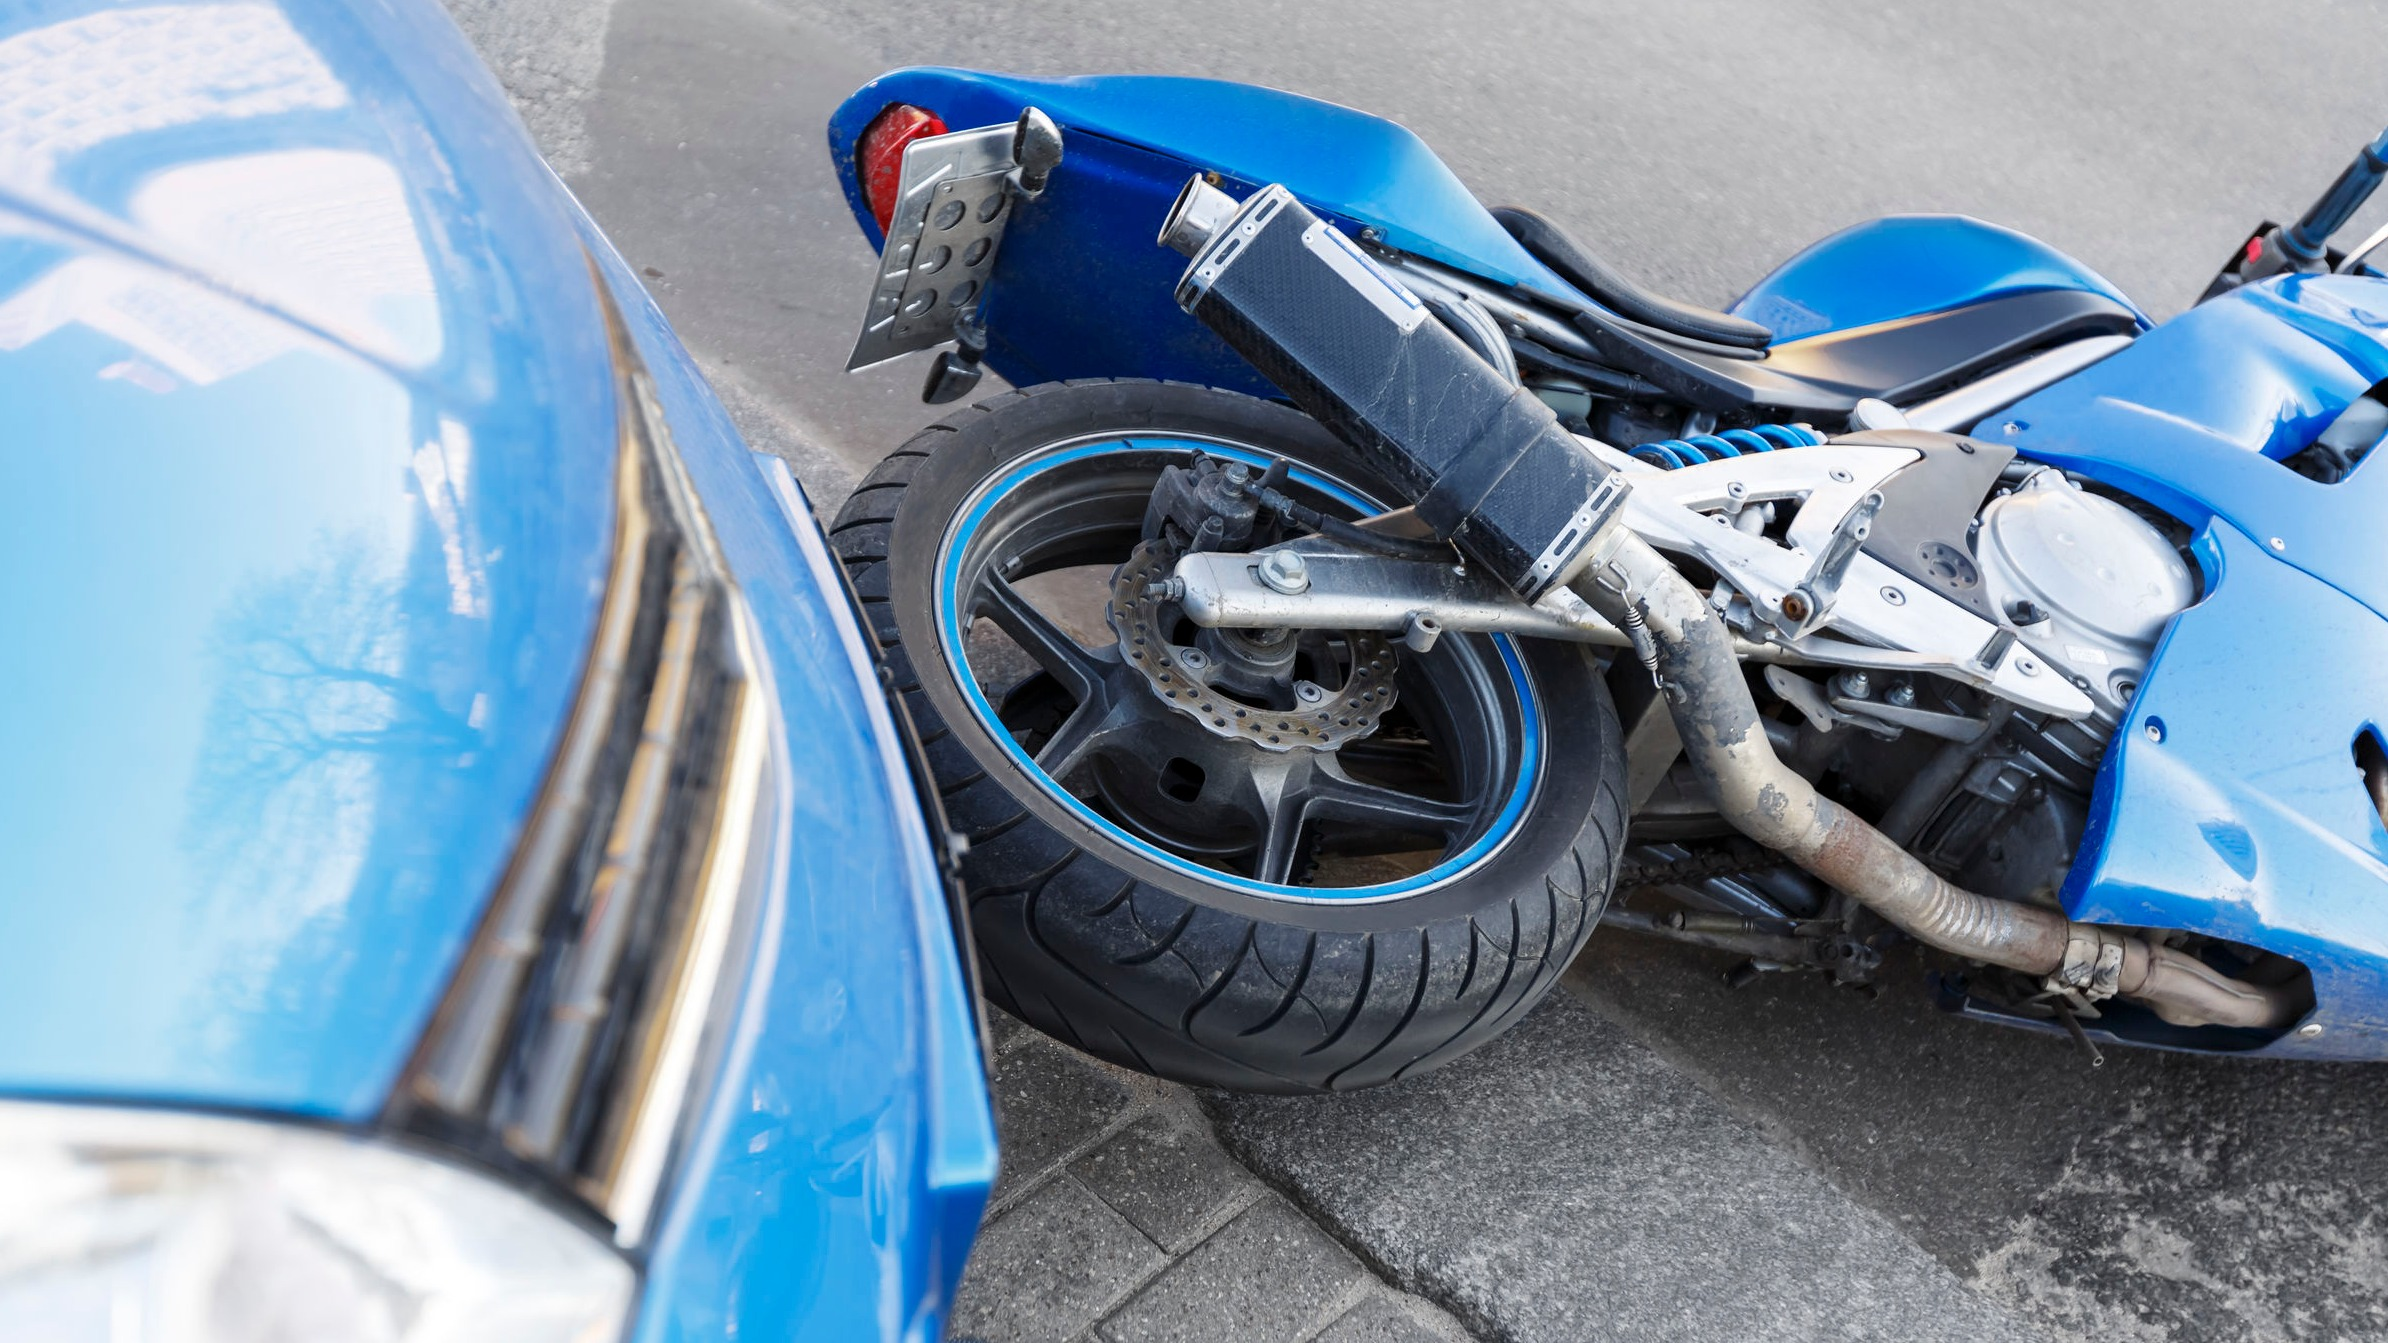 West Des Moines Iowa Personal Injury Attorney Motorcycle Accident